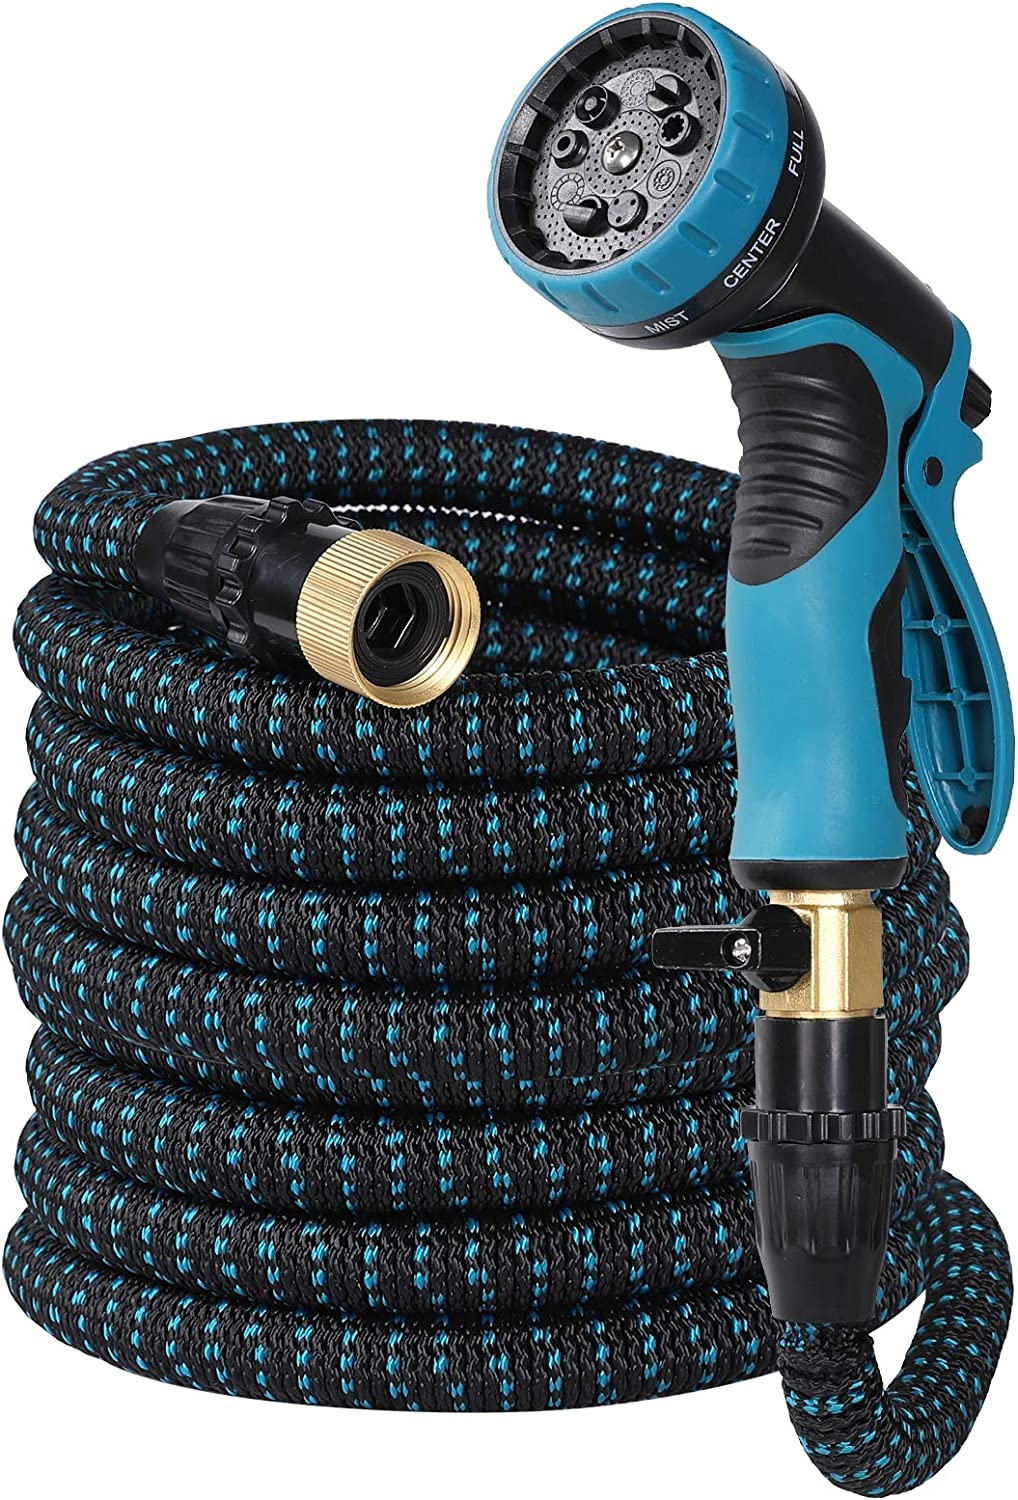 YEH-KC Easytree Hose, Garden Hose Expandable, Water Hose with Extra Strength Hose Spray Nozzle, Flexible Garden Hose with All Solid Brass Connectors, Leak Proof, Durable Expanding Garden Hose 25 Feet